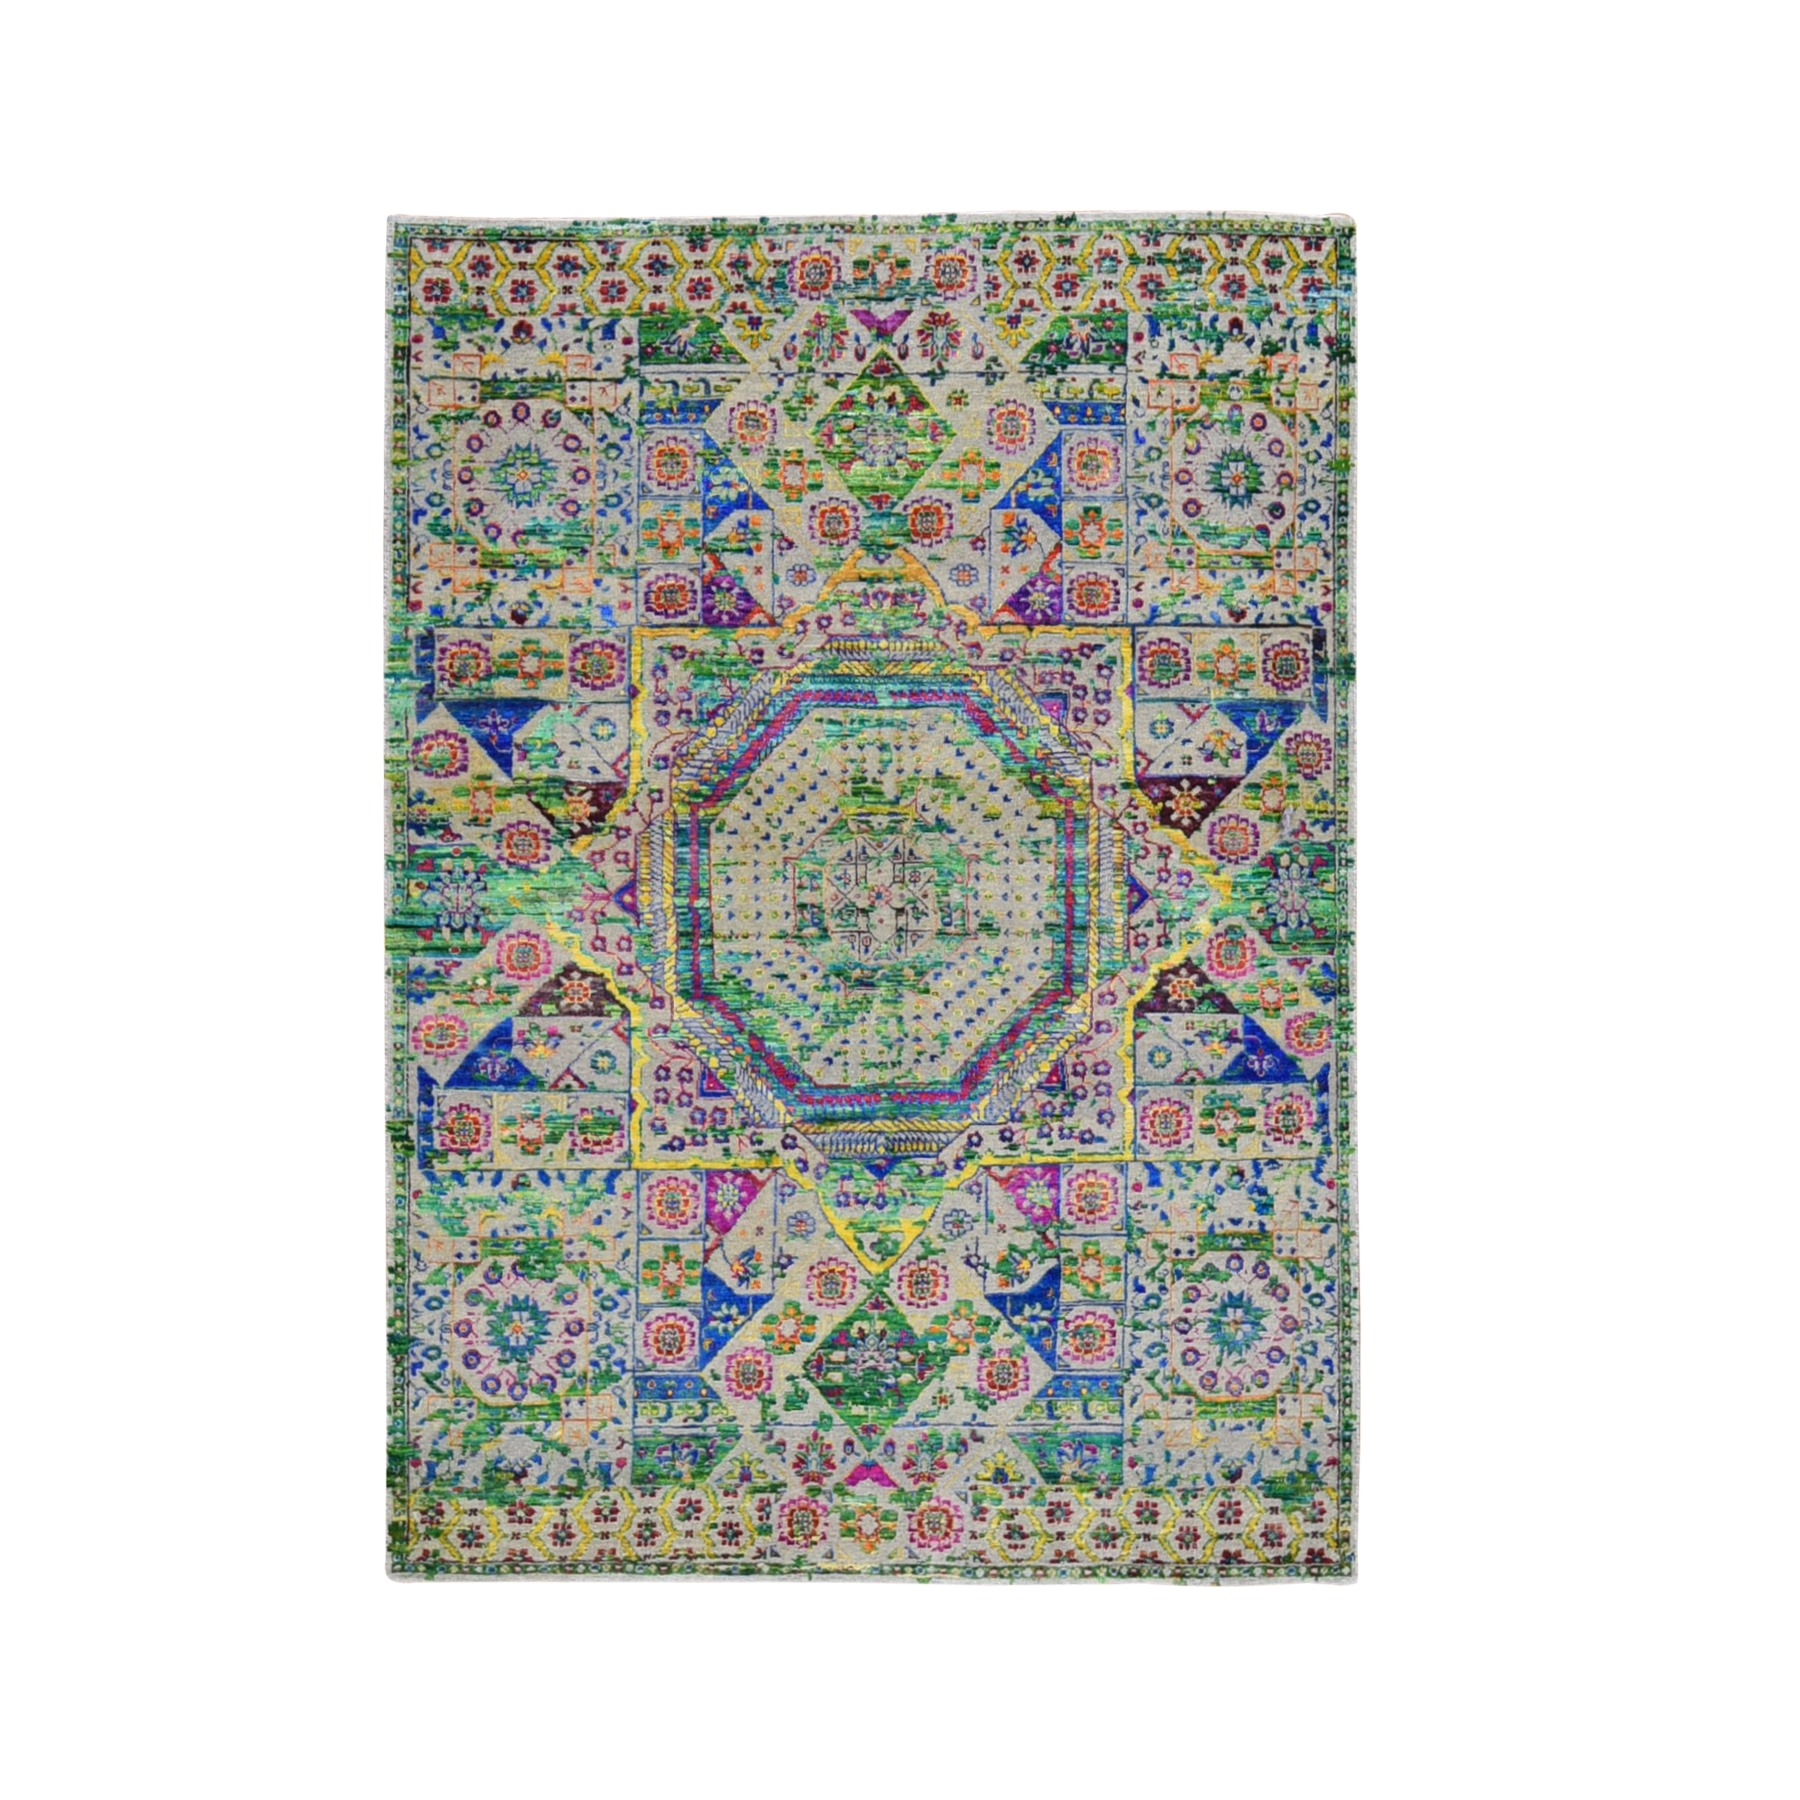 5'x7' Colorful Sari Silk Mamluk Design Hand Knotted Oriental Rug